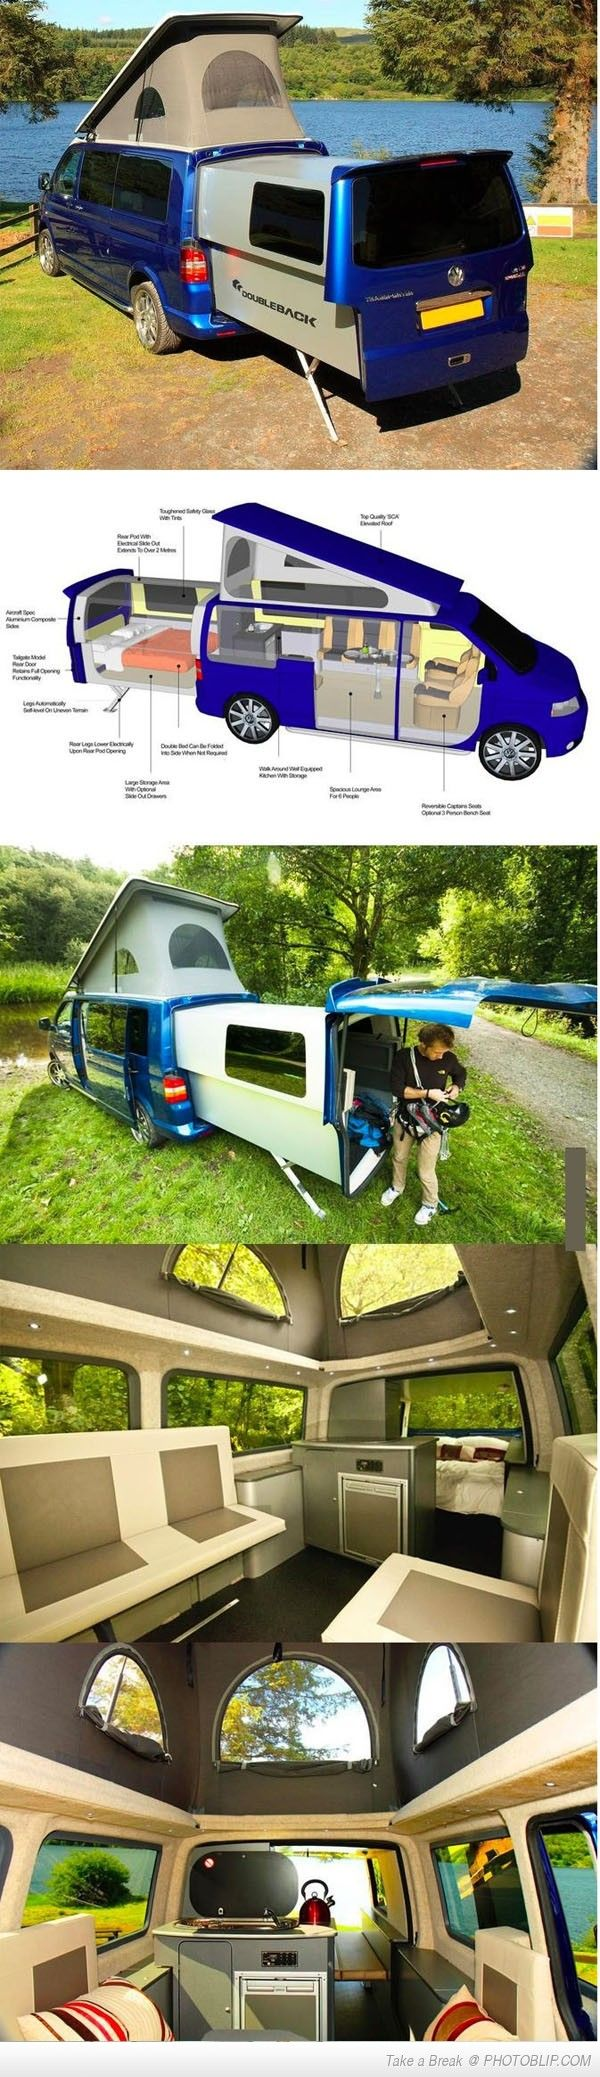 The Perfect Van To Travel